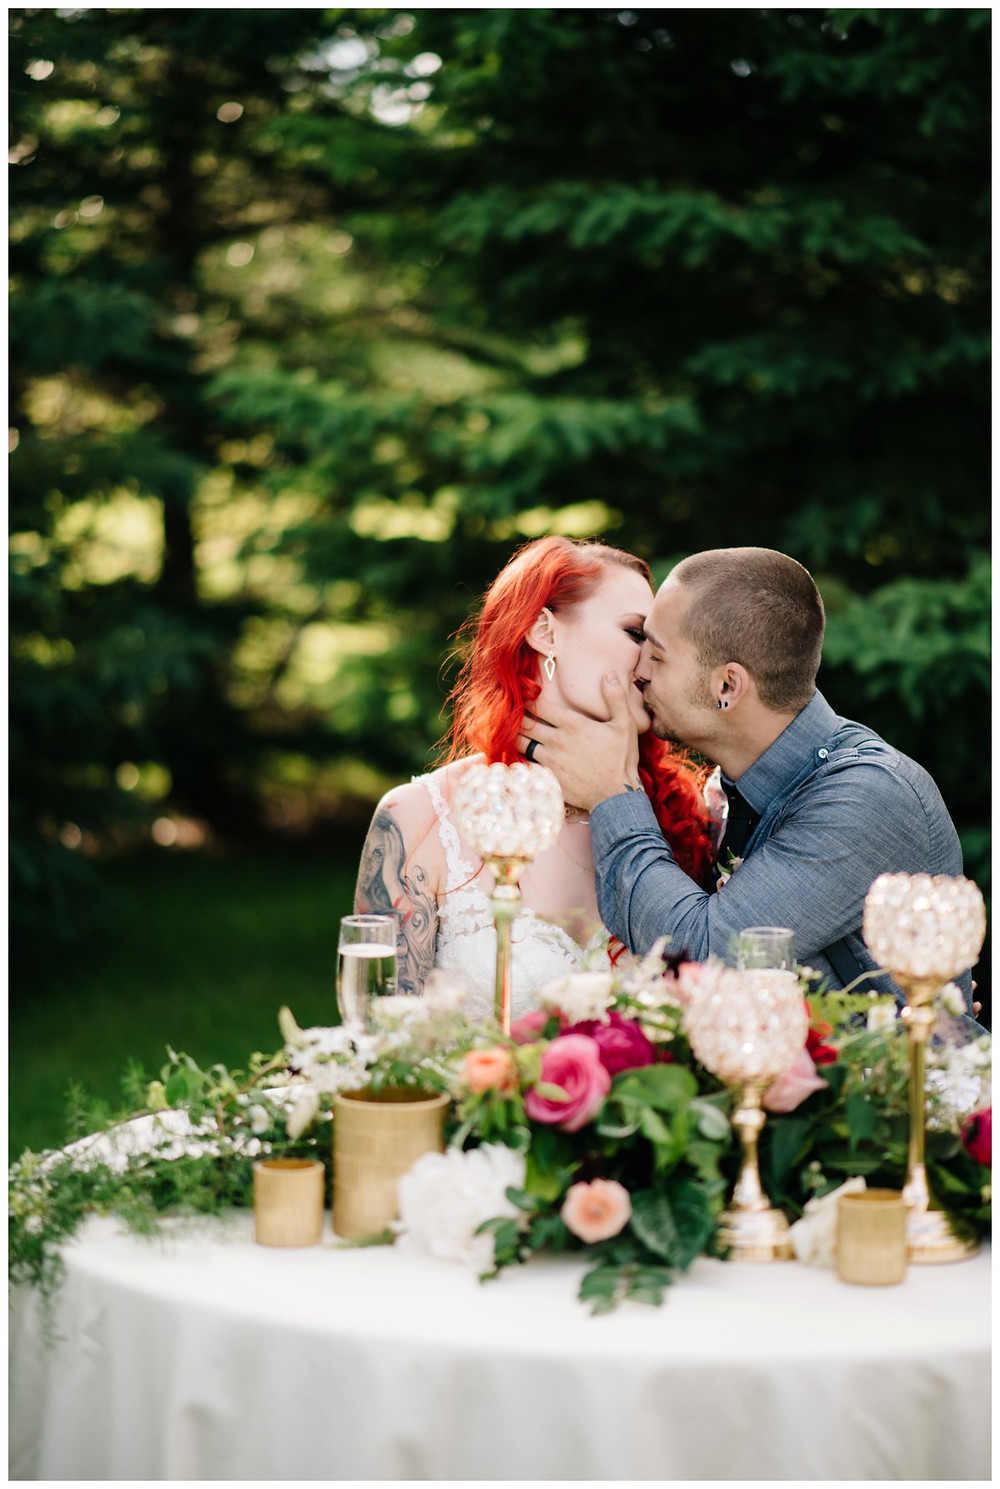 wedding-couple-kissing-at-table-at-homestead-meadows-styled-shoot-by-green-bay-wedding-photographer-kyra-rane-photography